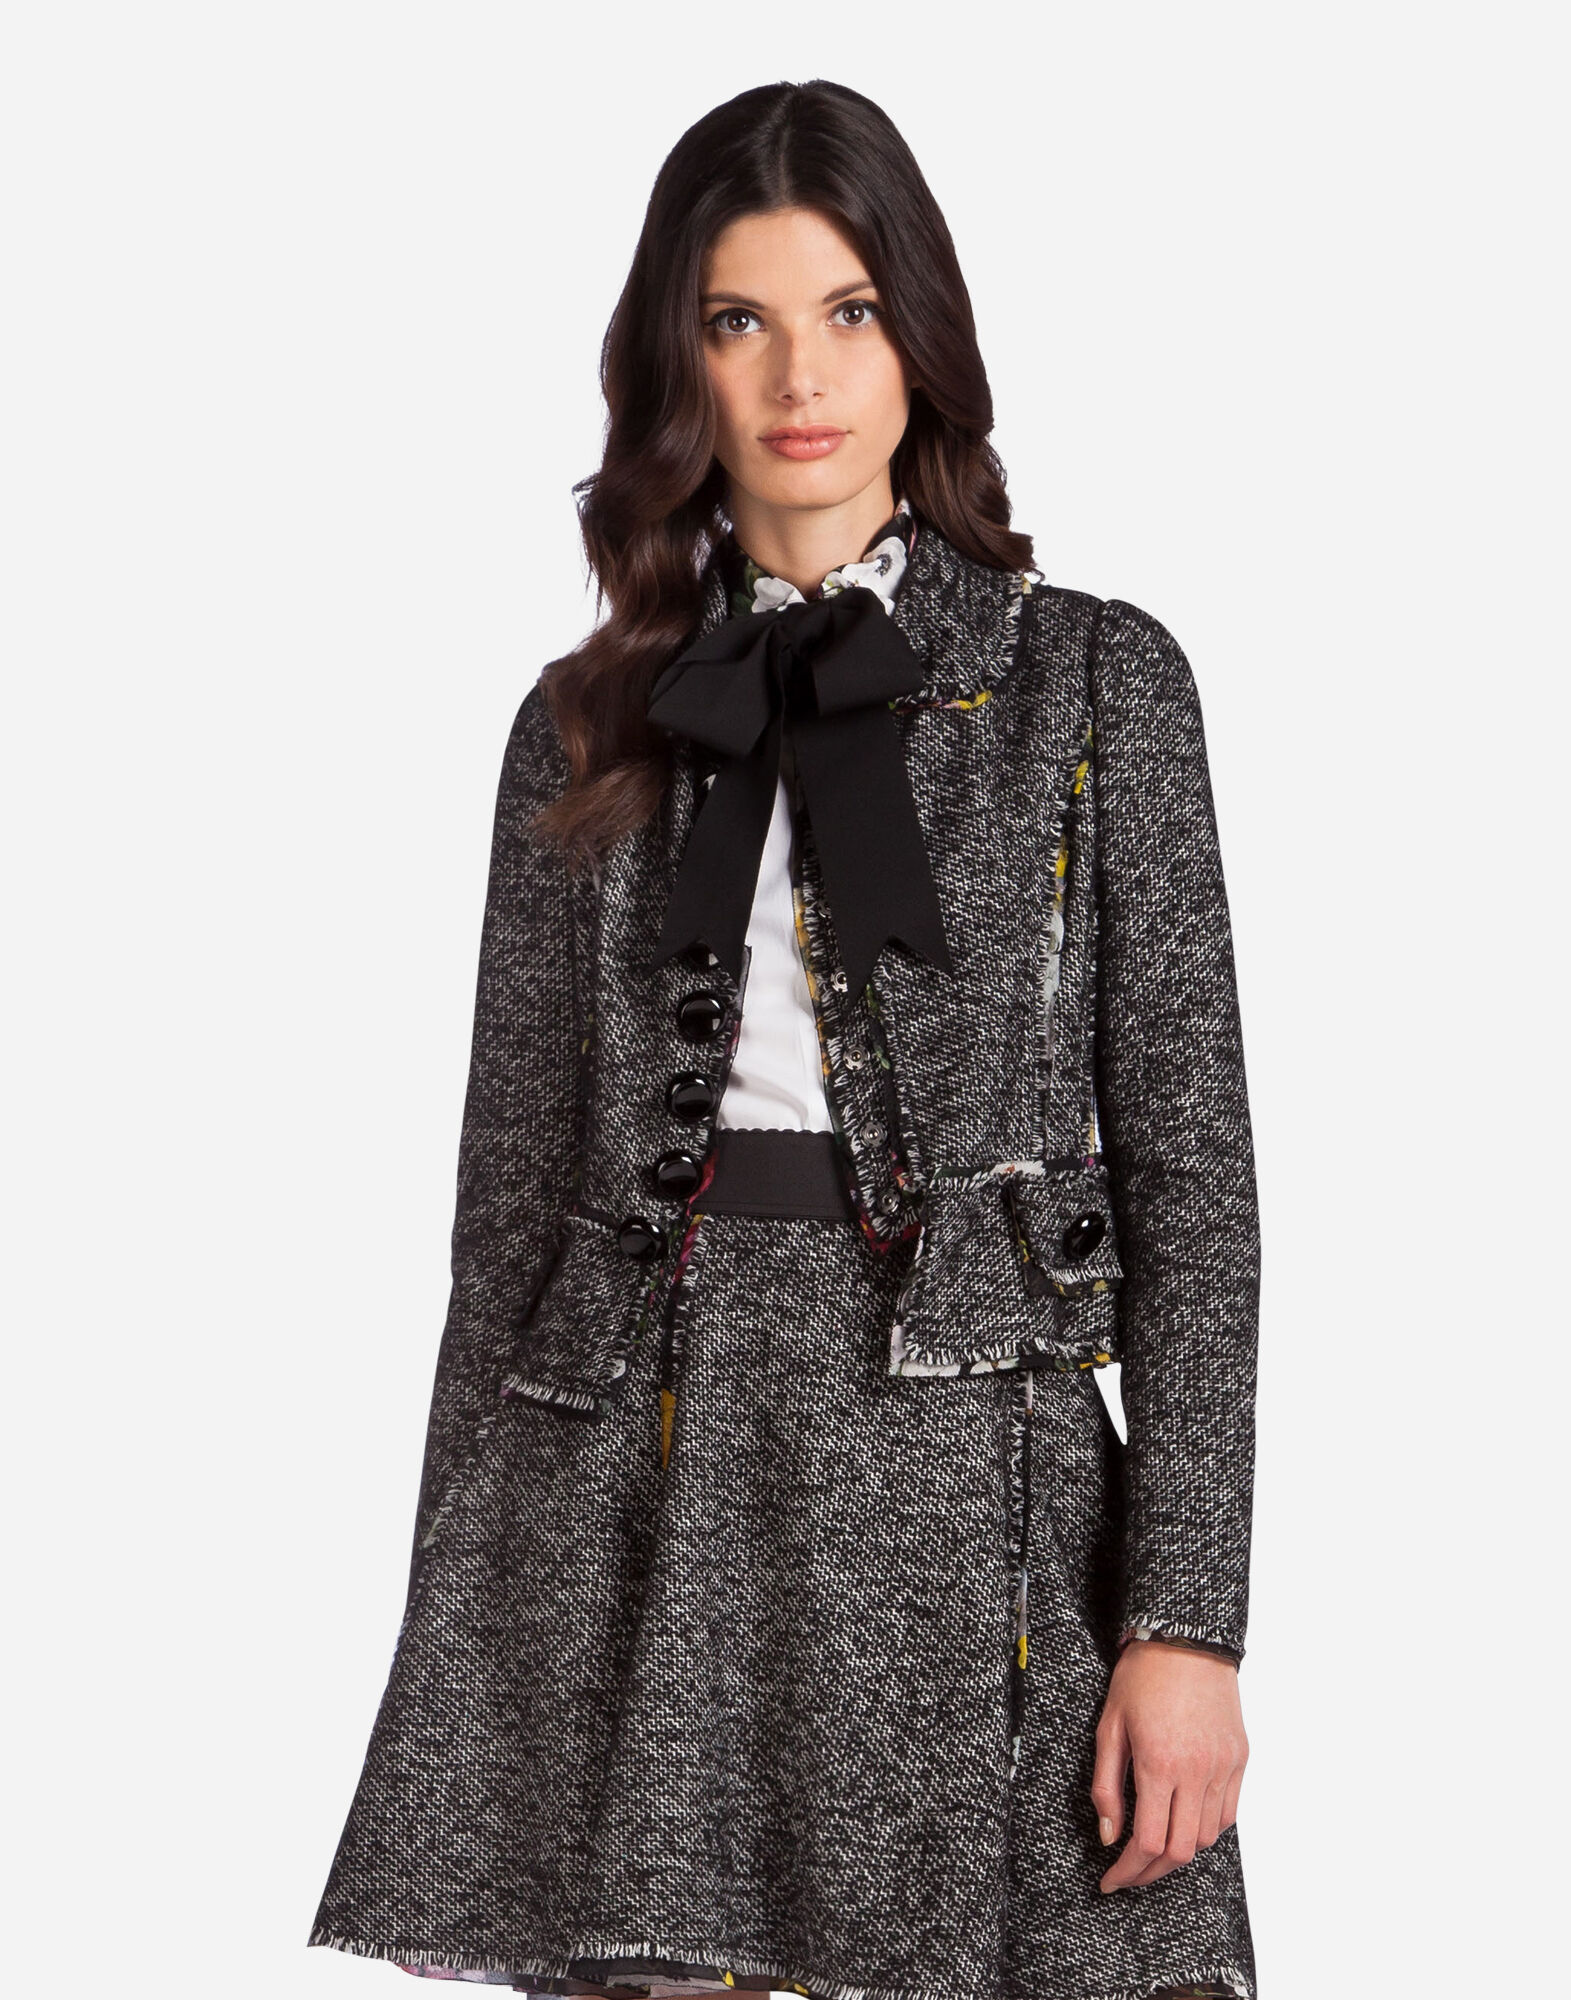 SINGLE-BREASTED JACKET WITH PRINTED DETAILS